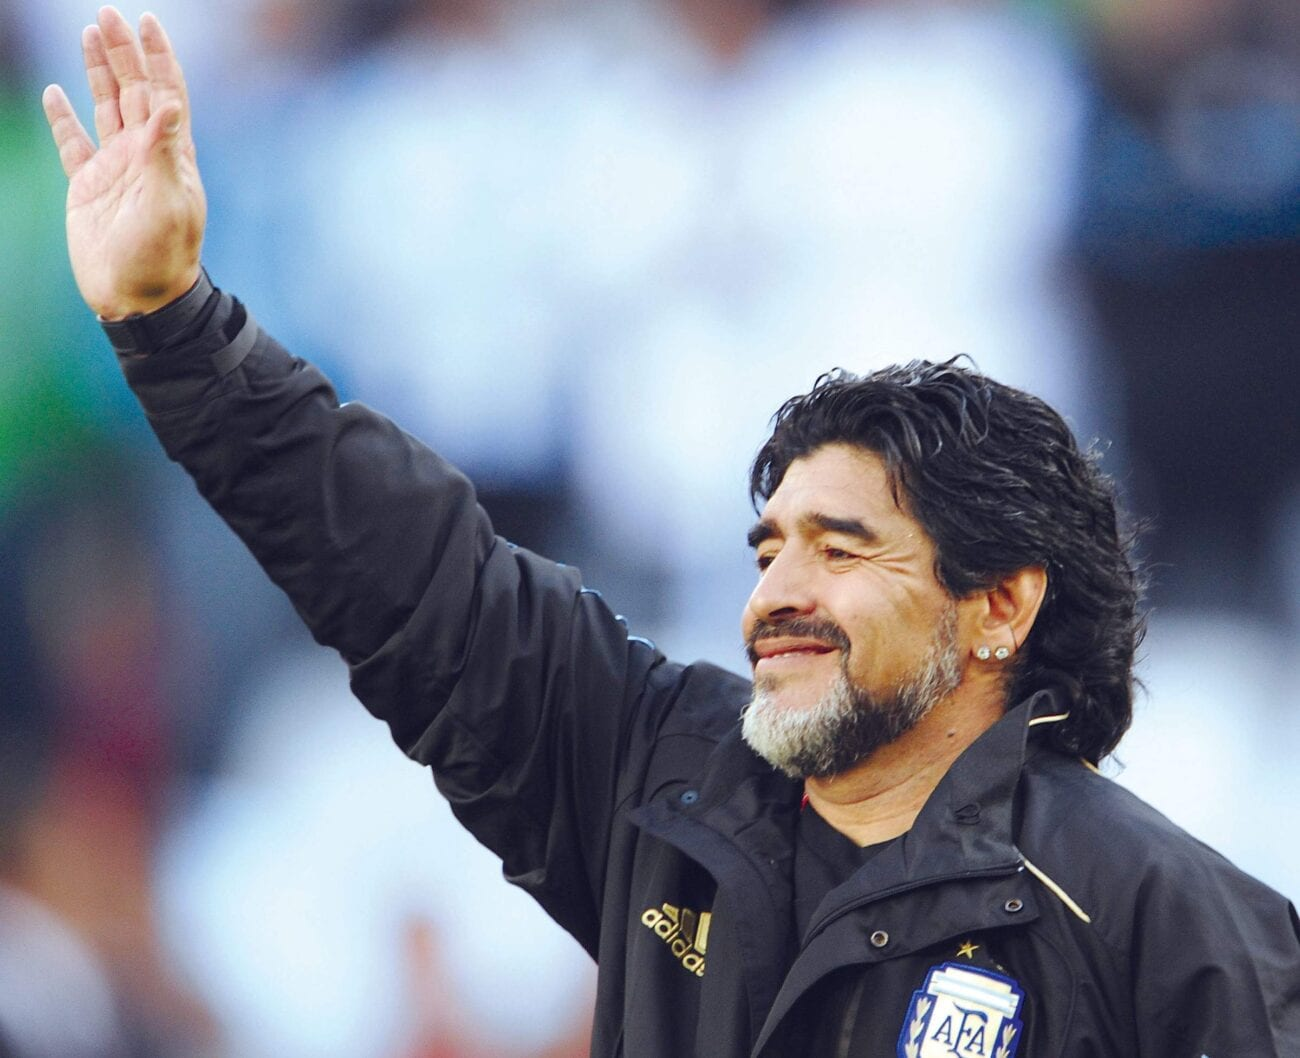 Many soccer fans are mourning the death of soccer legend Diego Maradona. Let's take a look at his most famous play to remember him.